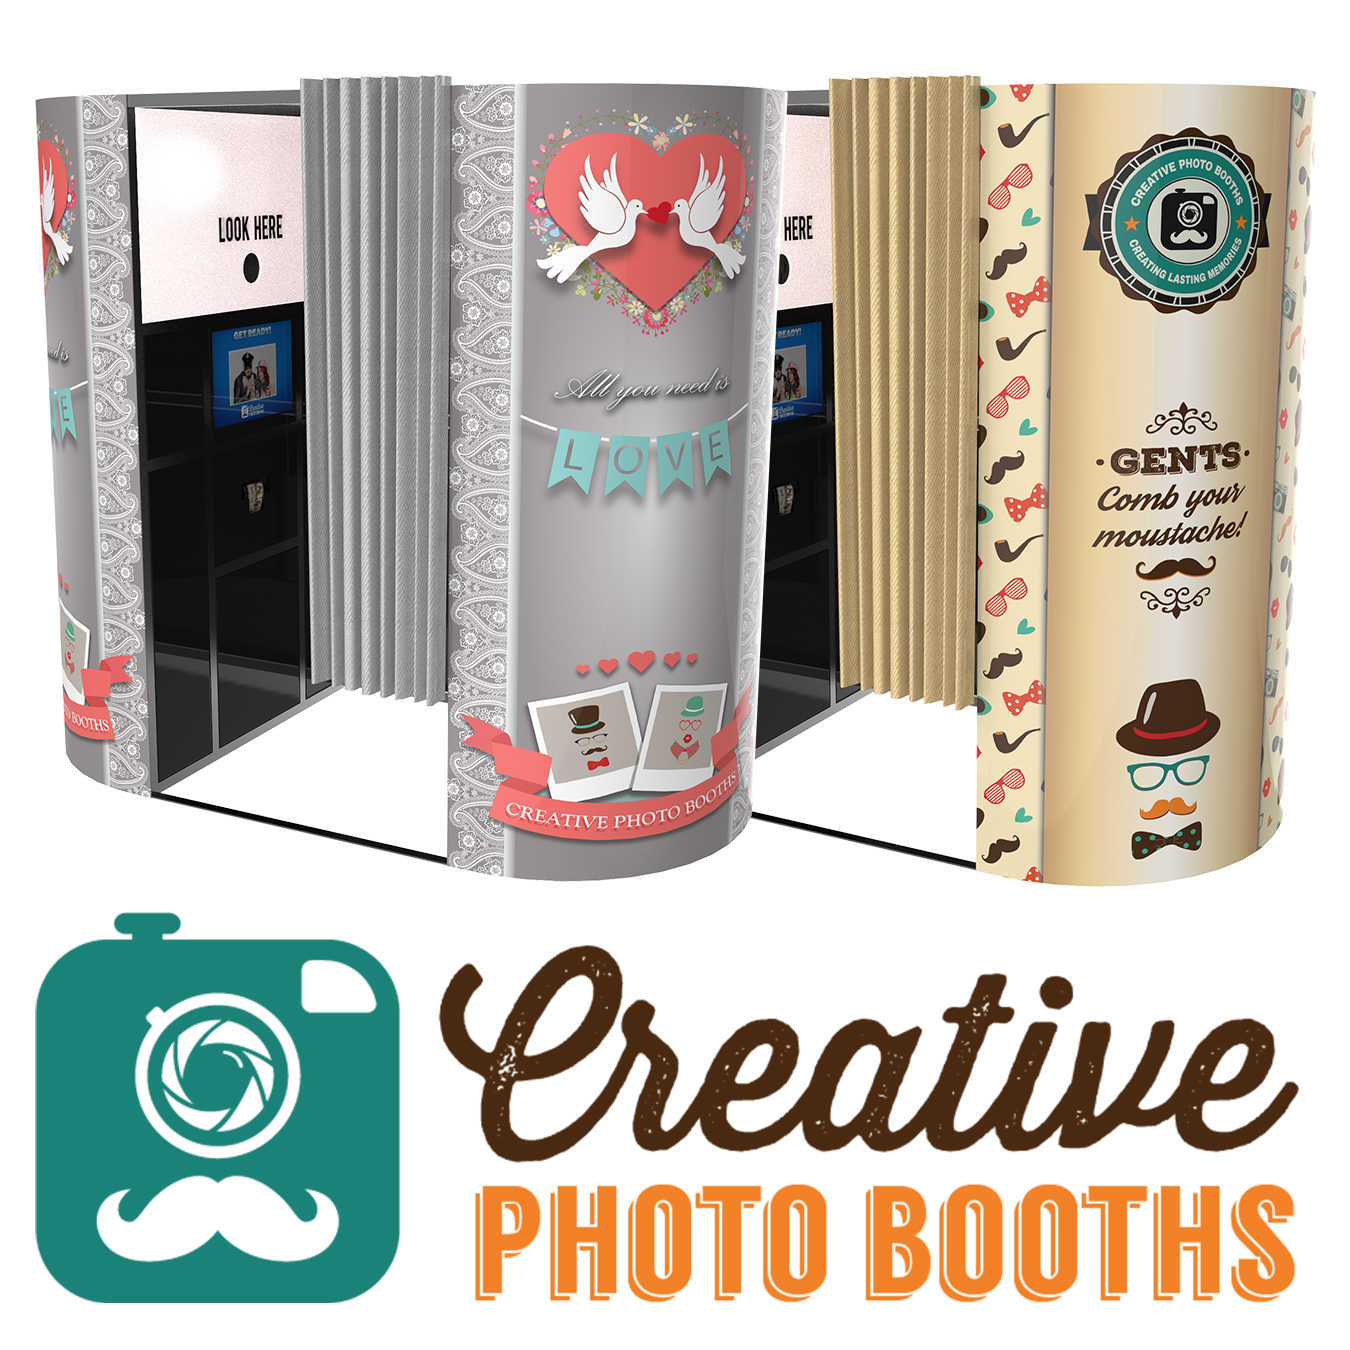 Creative Photo Booths